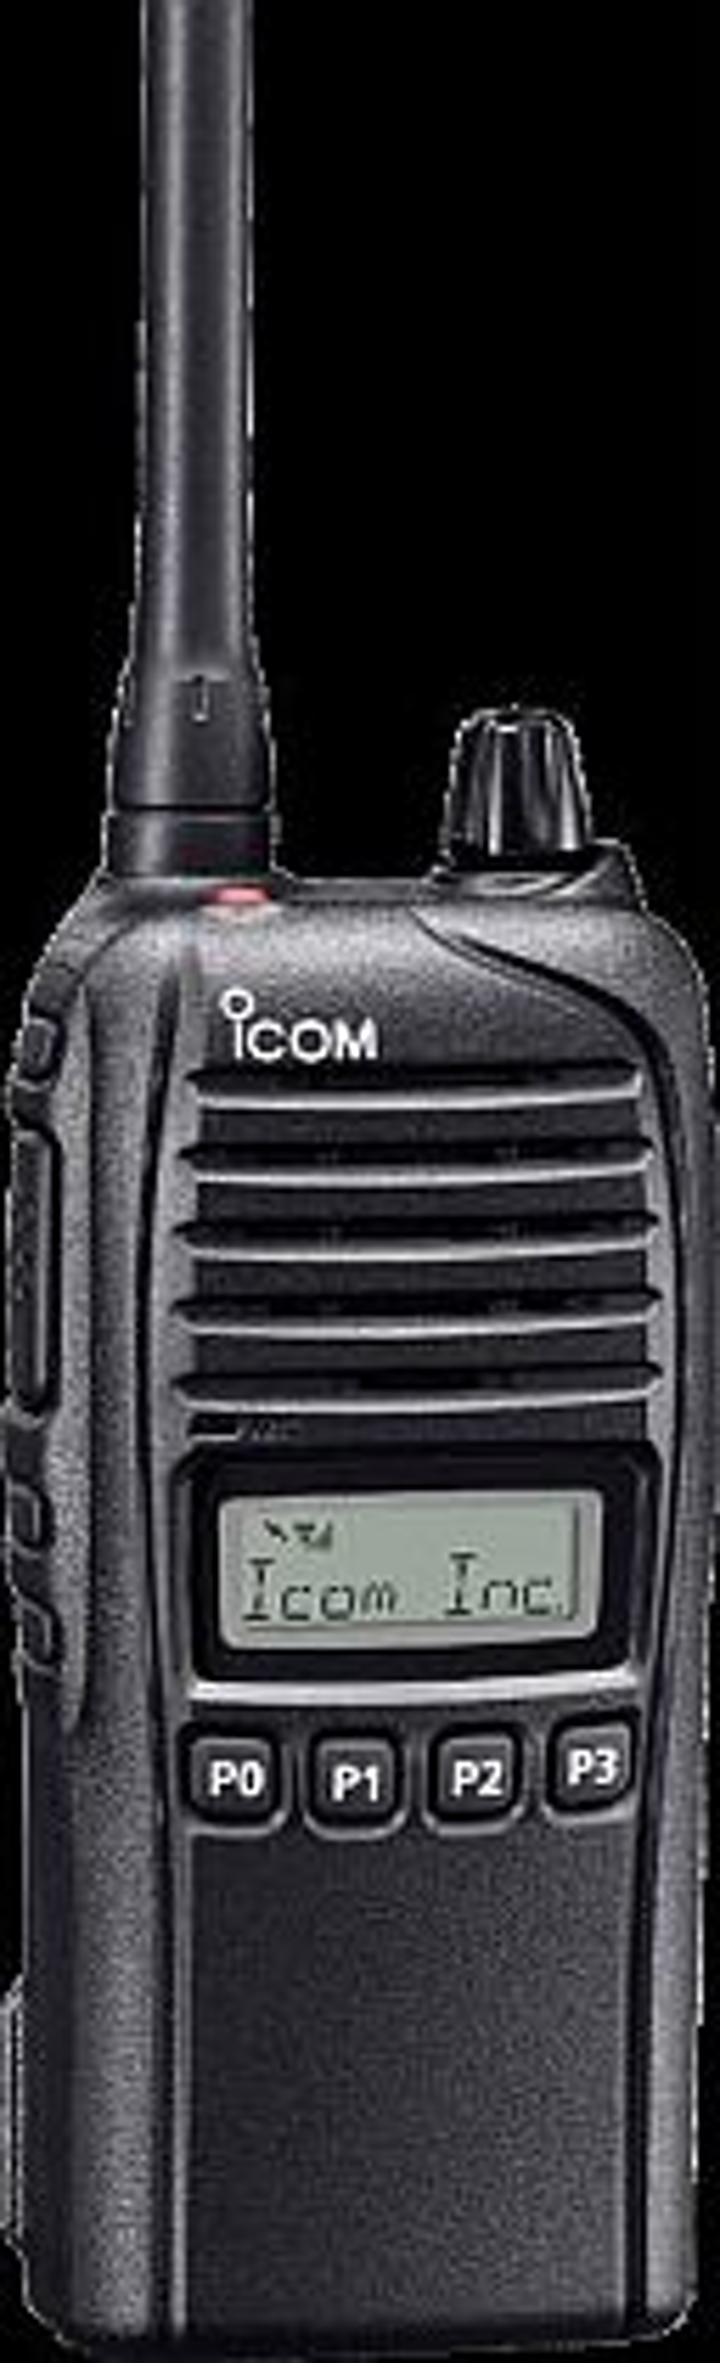 Rugged, waterproof land-mobile radio that meets military specifications introduced by Icom